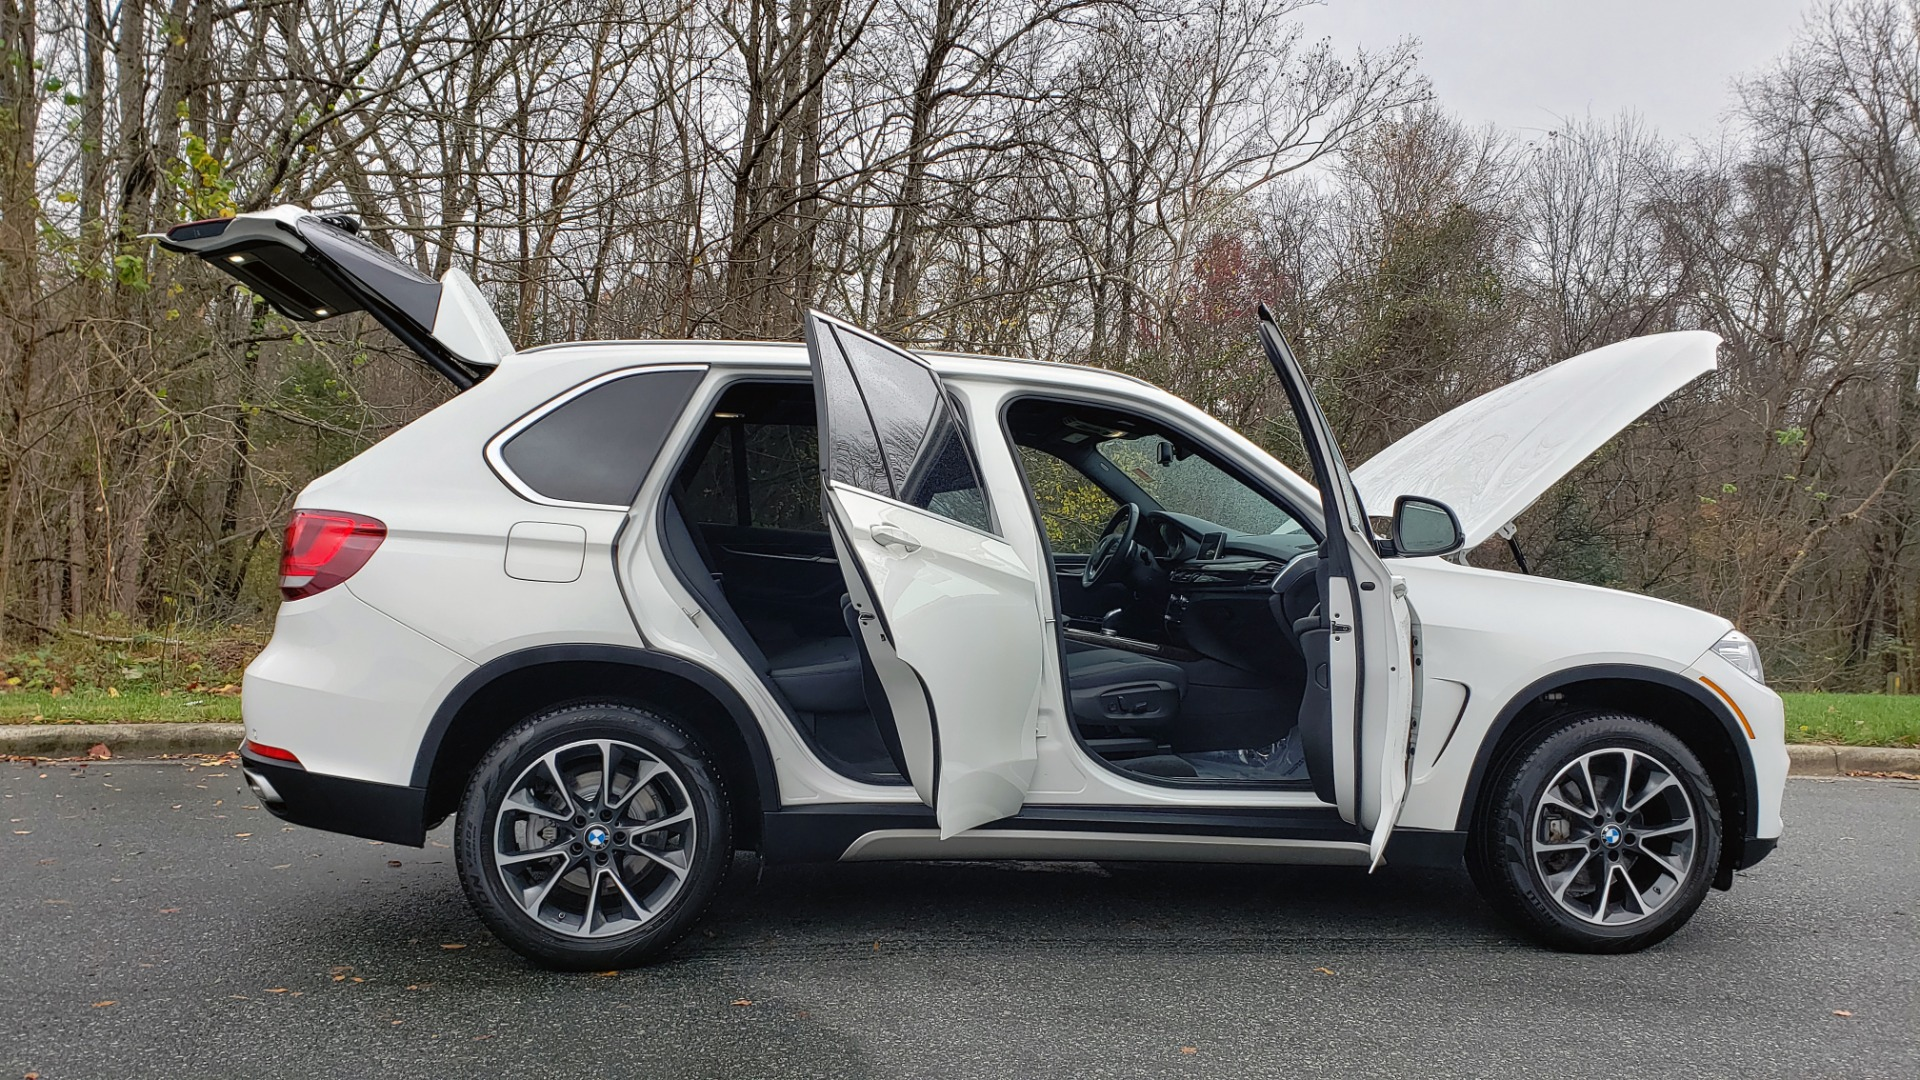 Used 2018 BMW X5 XDRIVE35I / AWD / NAV / HTD STS / SUNROOF / REARVIEW for sale Sold at Formula Imports in Charlotte NC 28227 9